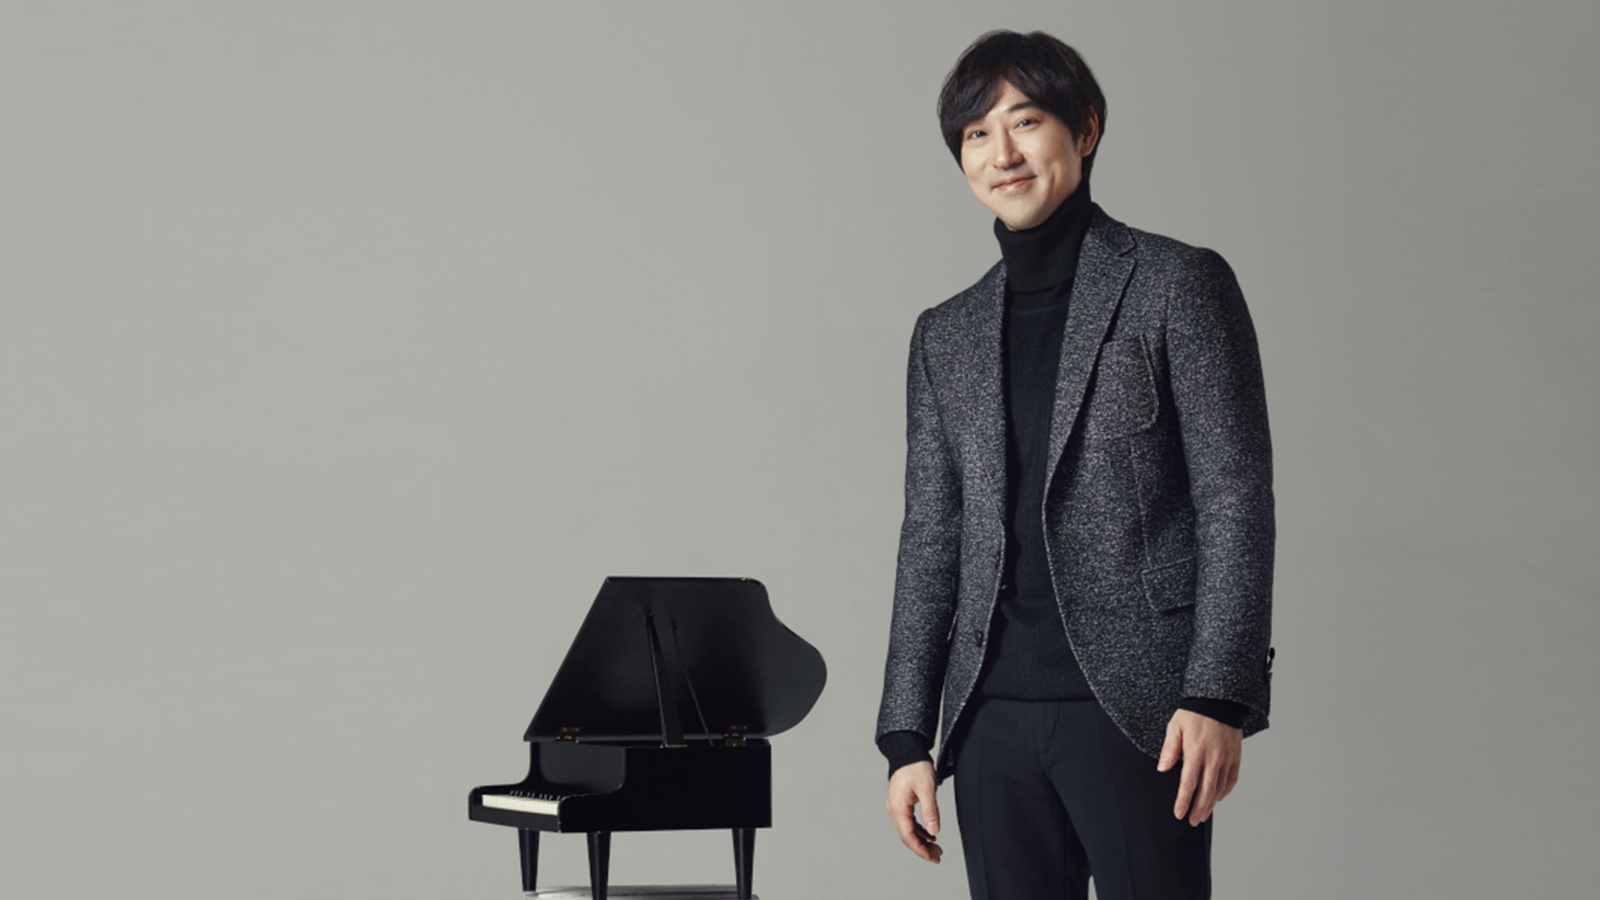 Yiruma is performing live in Singapore later this month